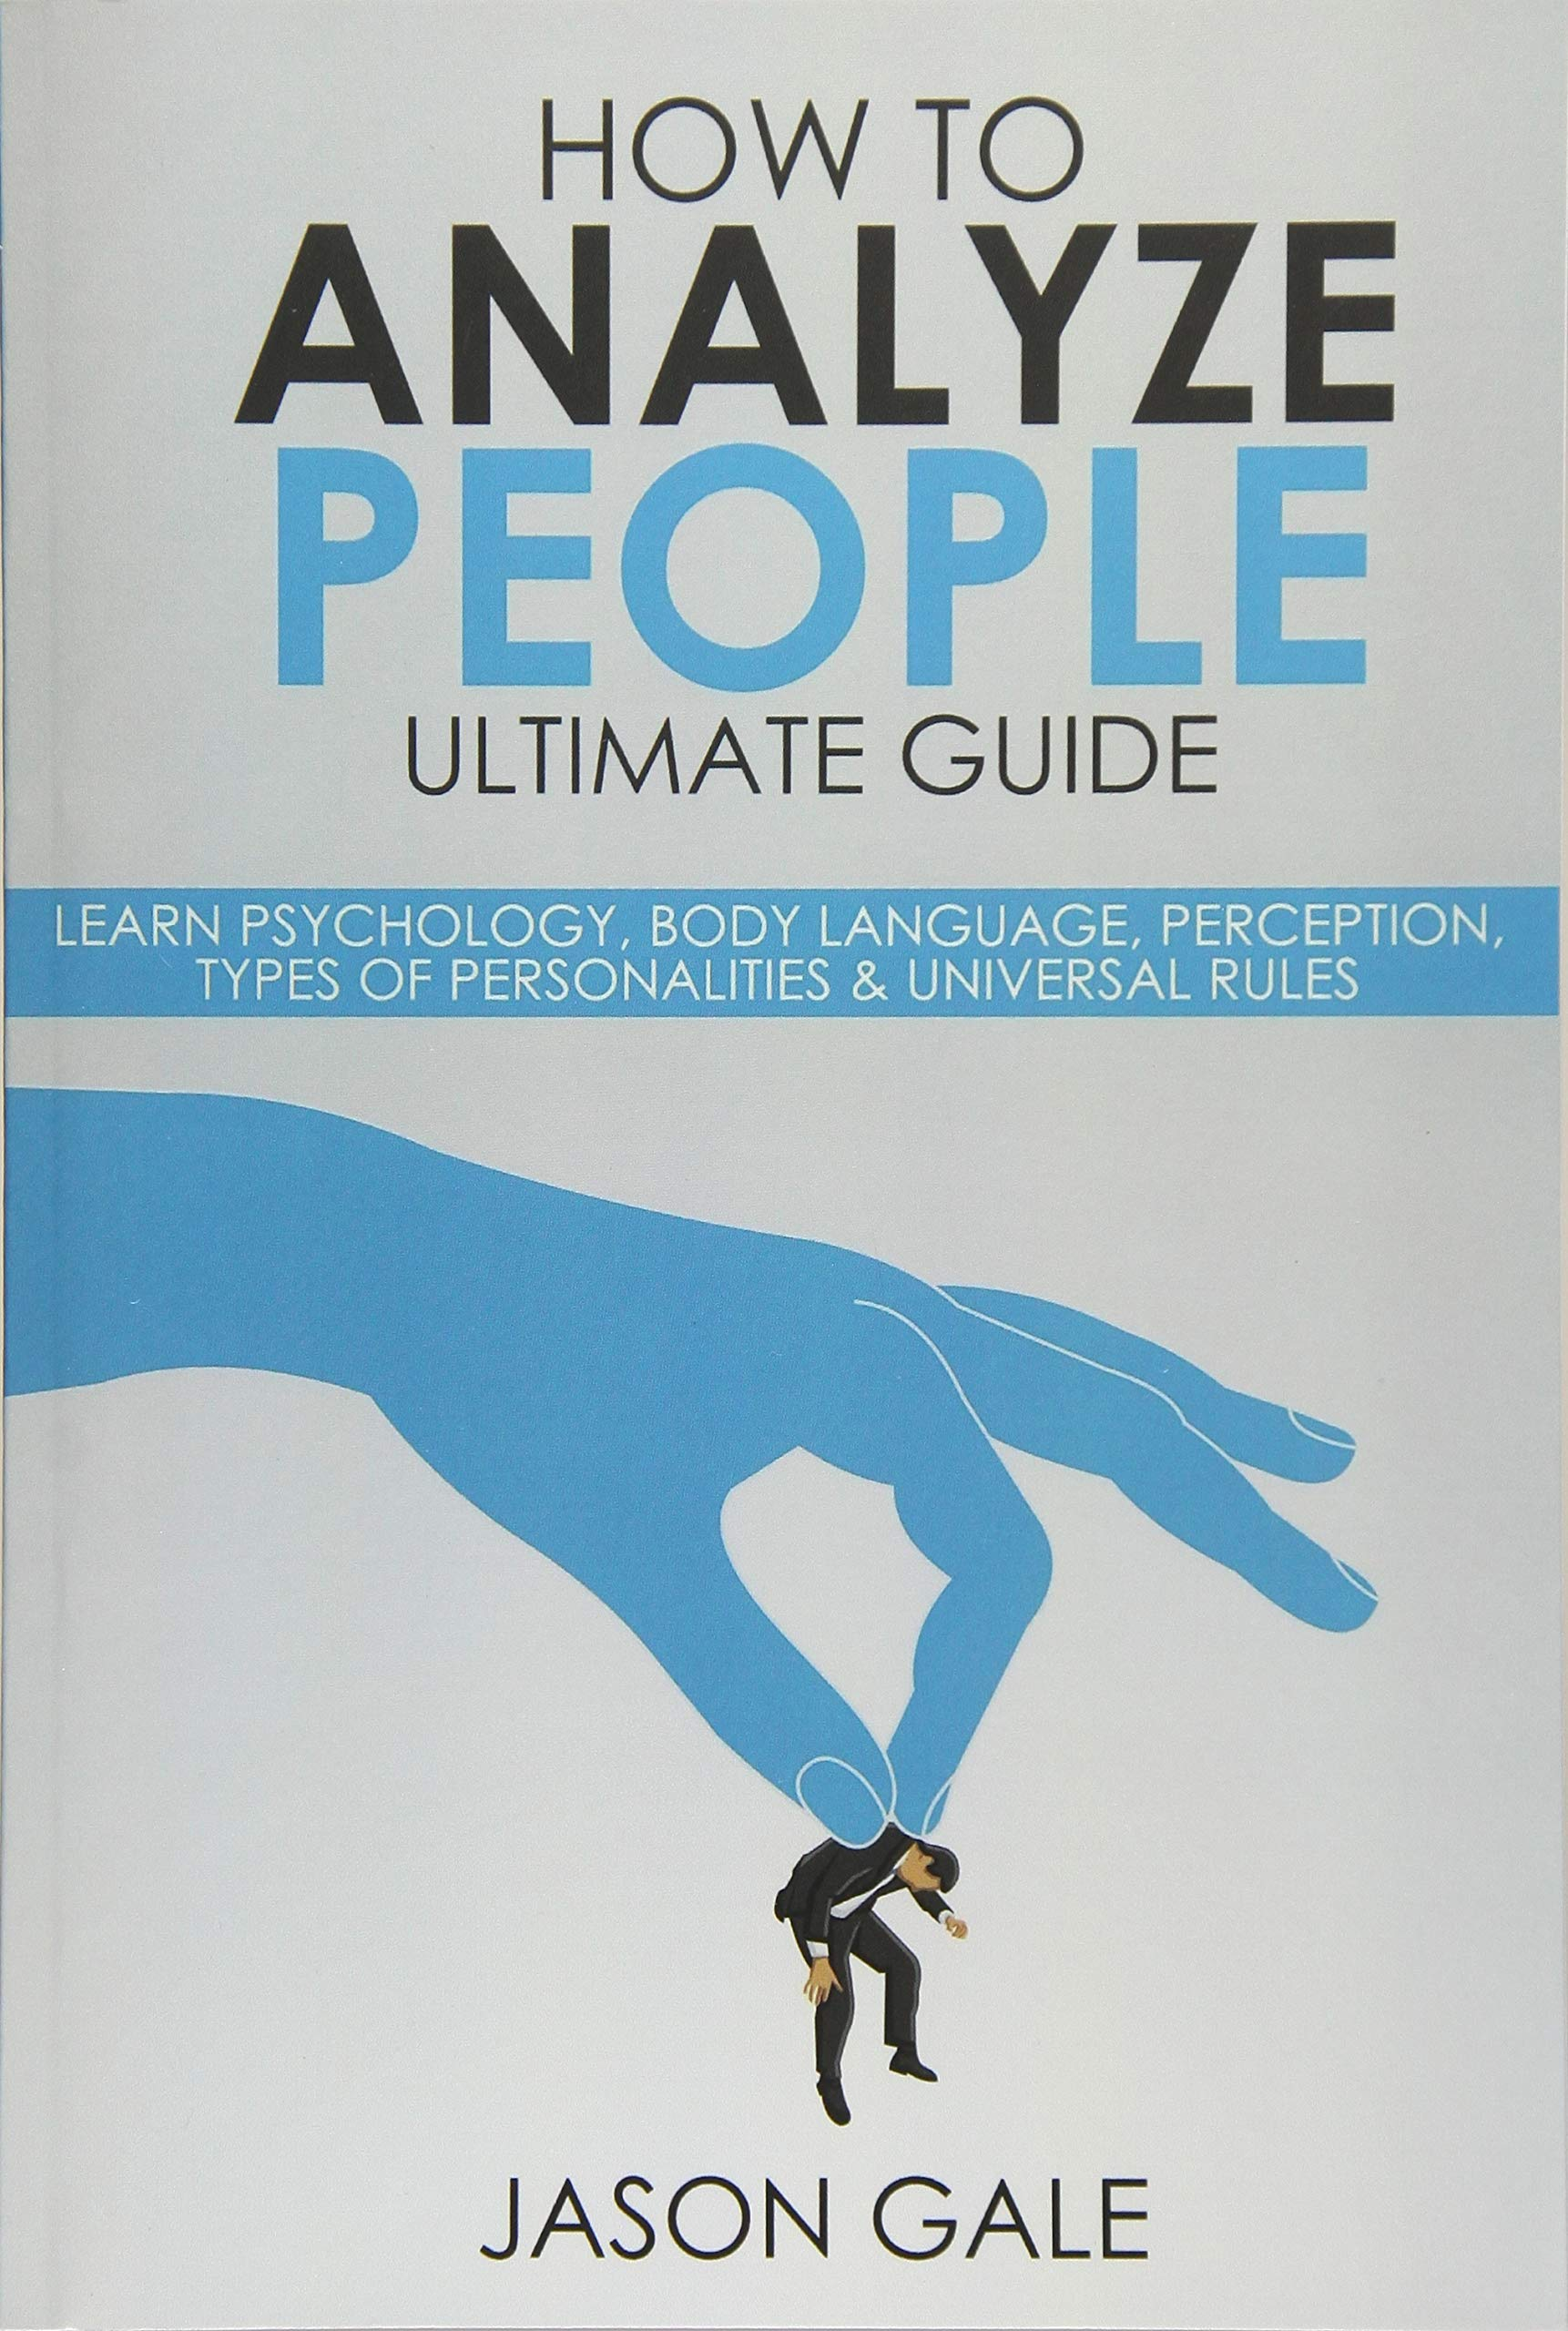 Download How to Analyze People Ultimate Guide:  Learn Psychology, Body Language, Percepti ebook